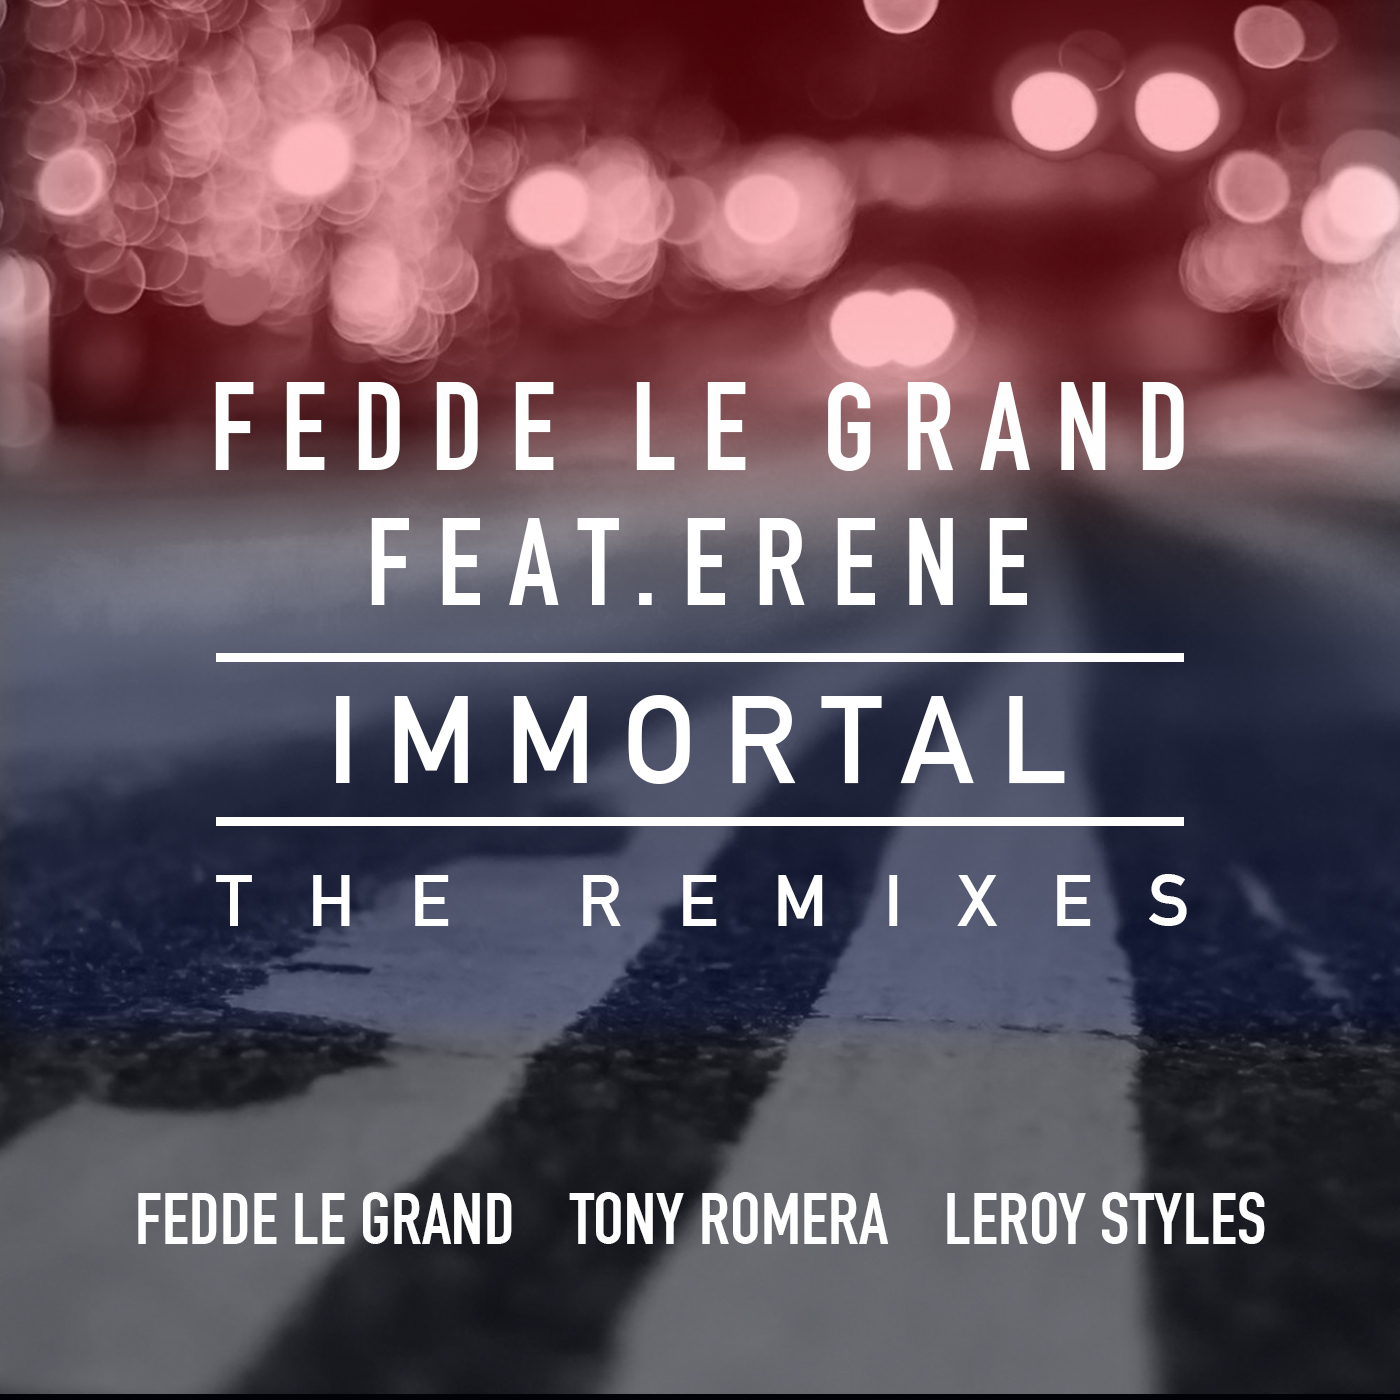 Fedde Le Grand feat. Erene - Immortal (The Remixes)